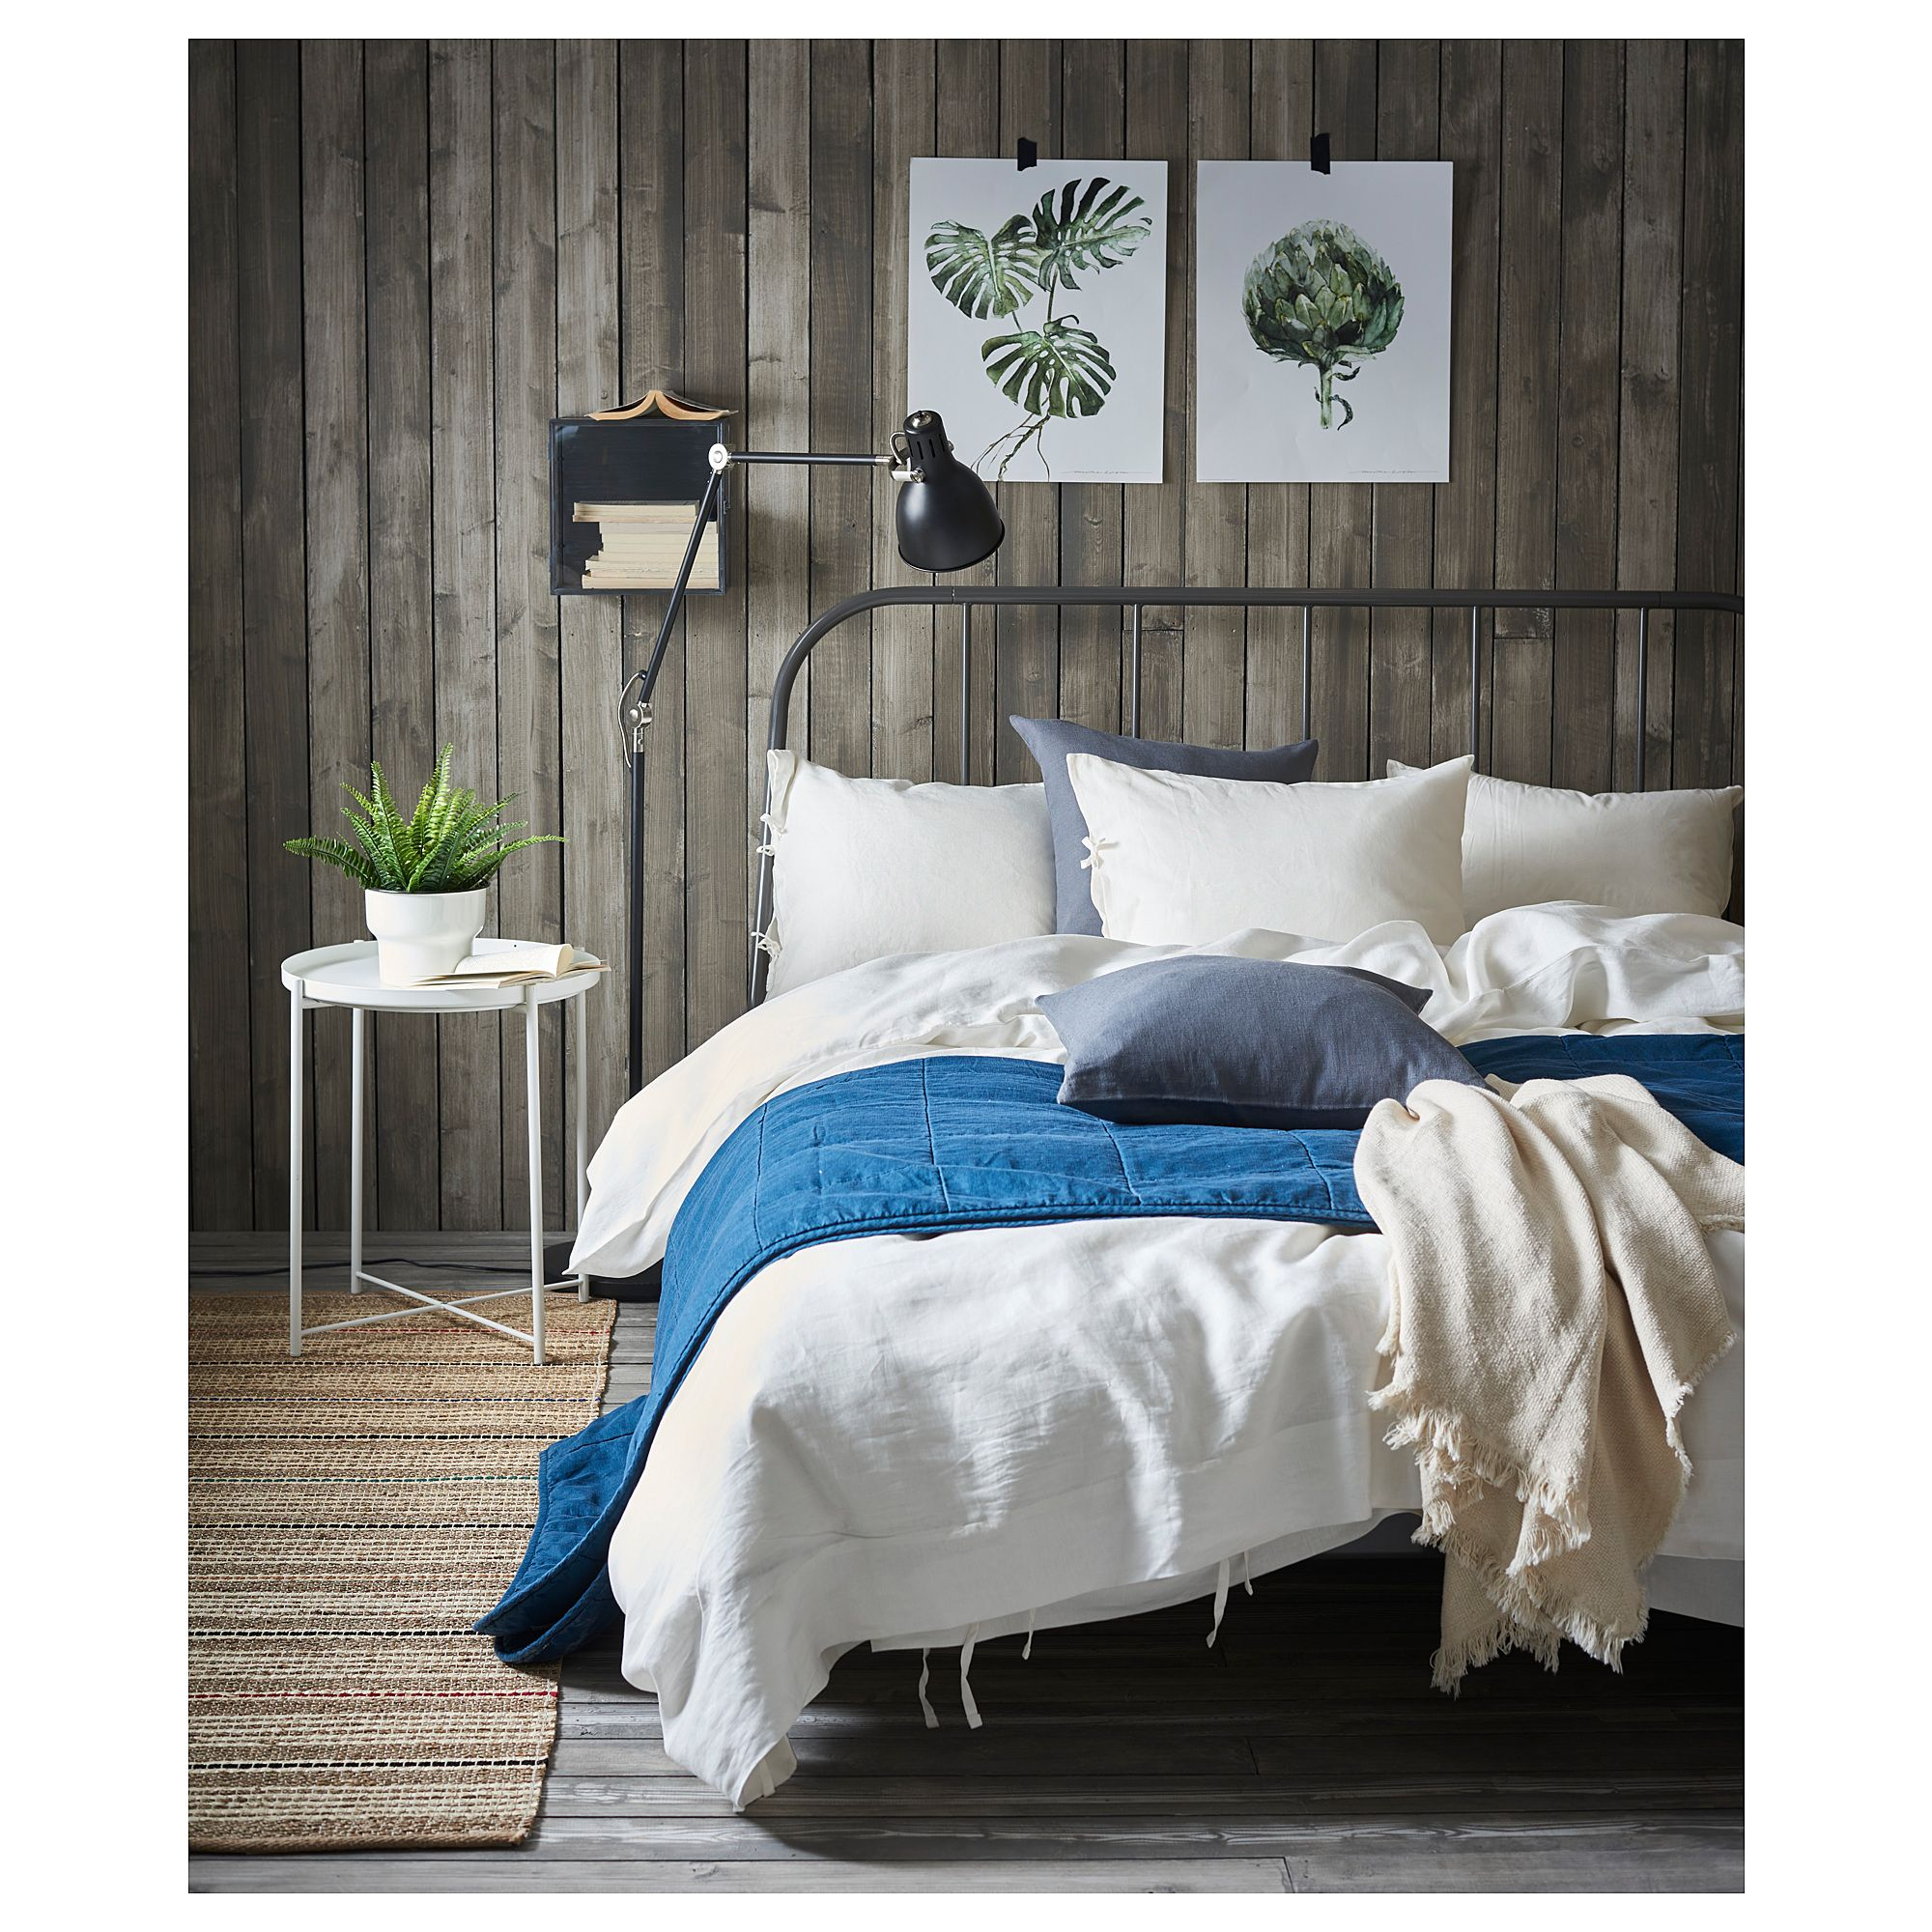 ikea puderviva duvet cover and pillowcase s white. Black Bedroom Furniture Sets. Home Design Ideas